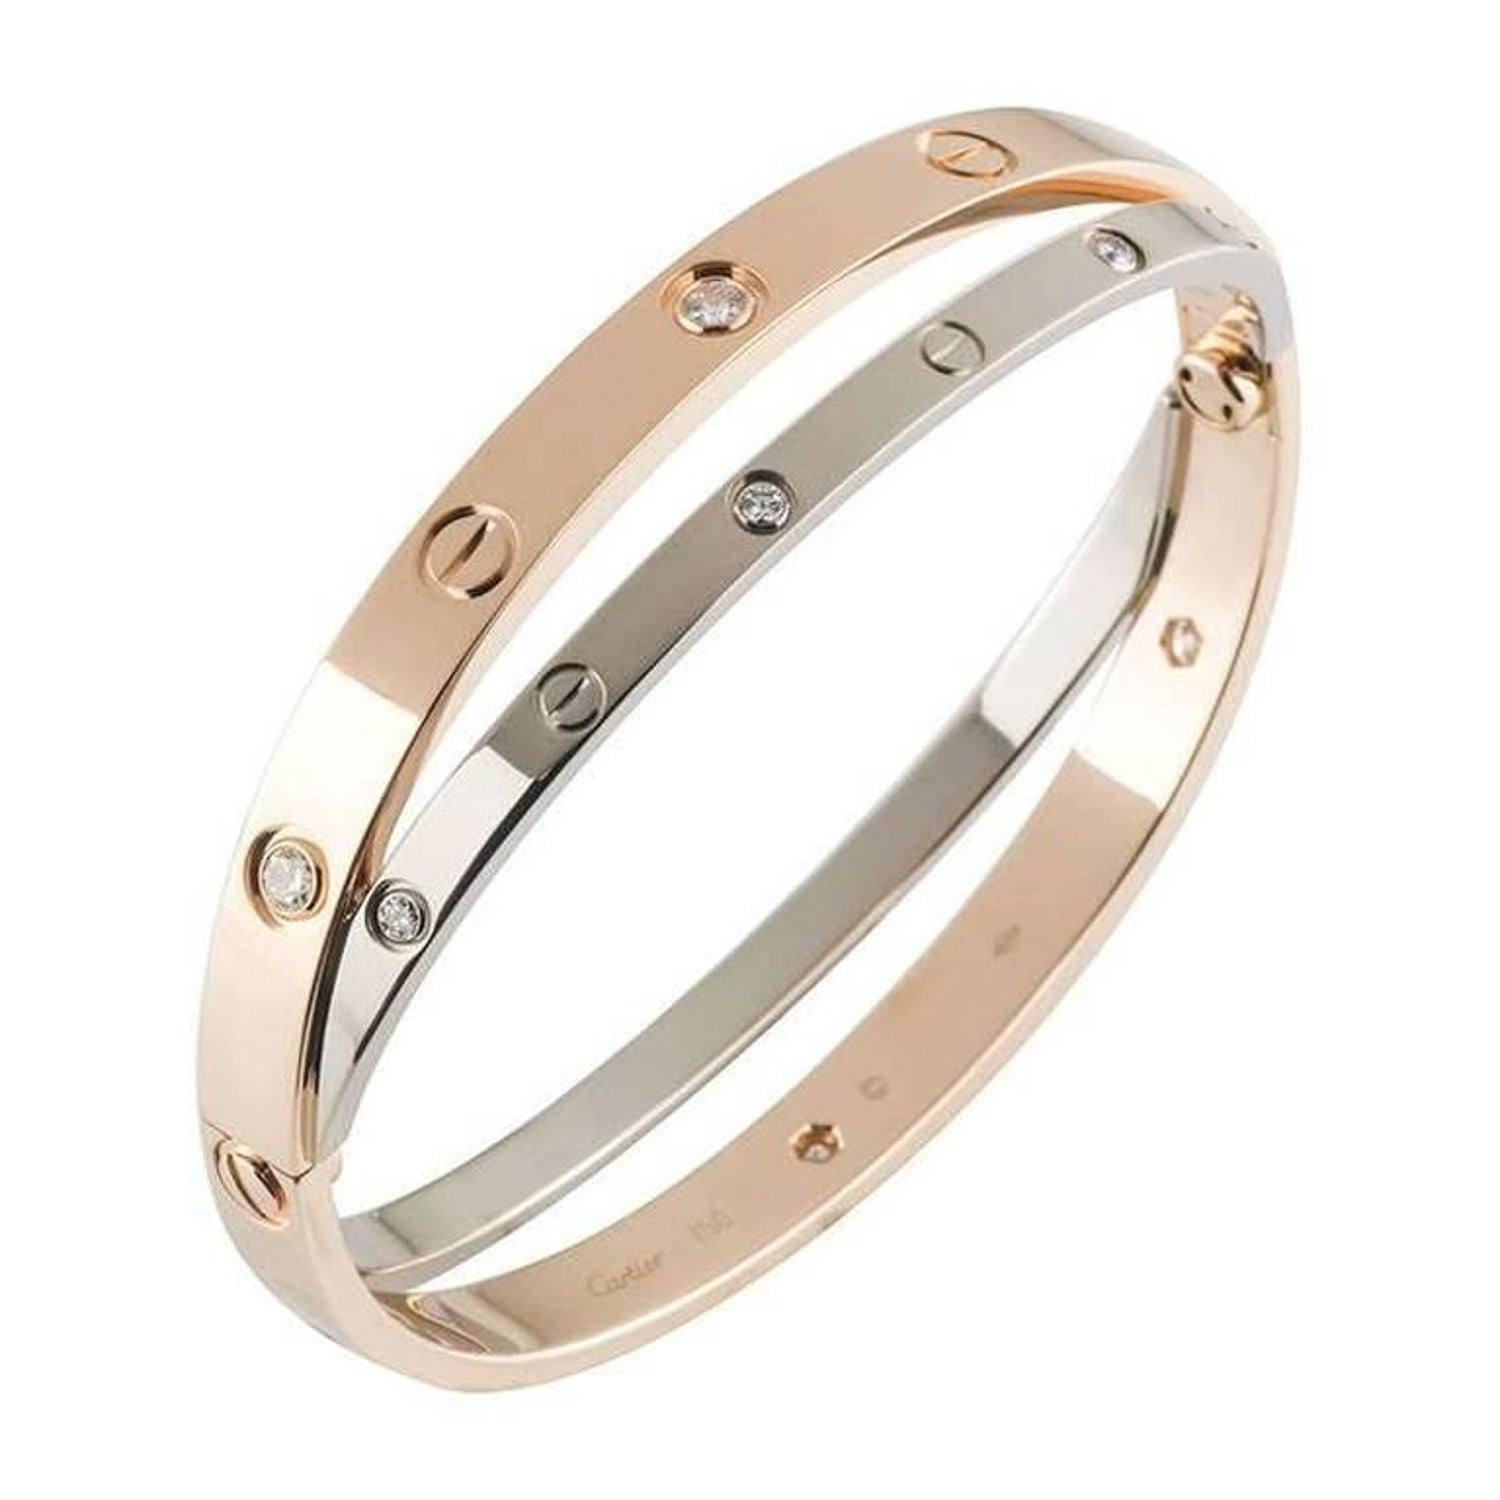 ca5e3a126179ae Cartier Rose and White Gold Diamond Love Bracelet at 1stdibs